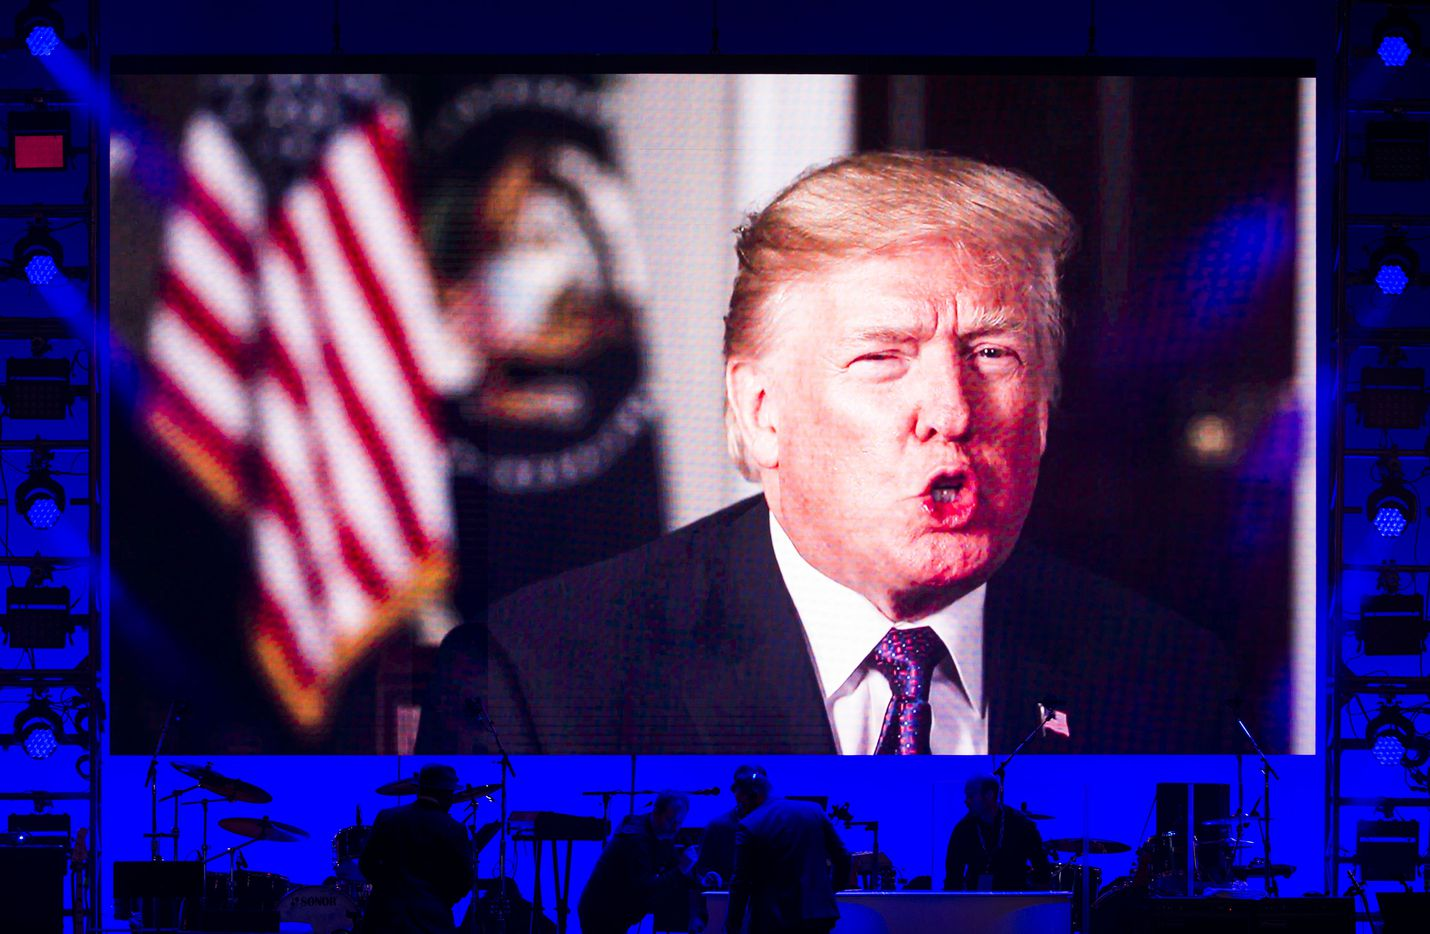 President Donald Trump speaks in a video message as stage hands set up between performers.